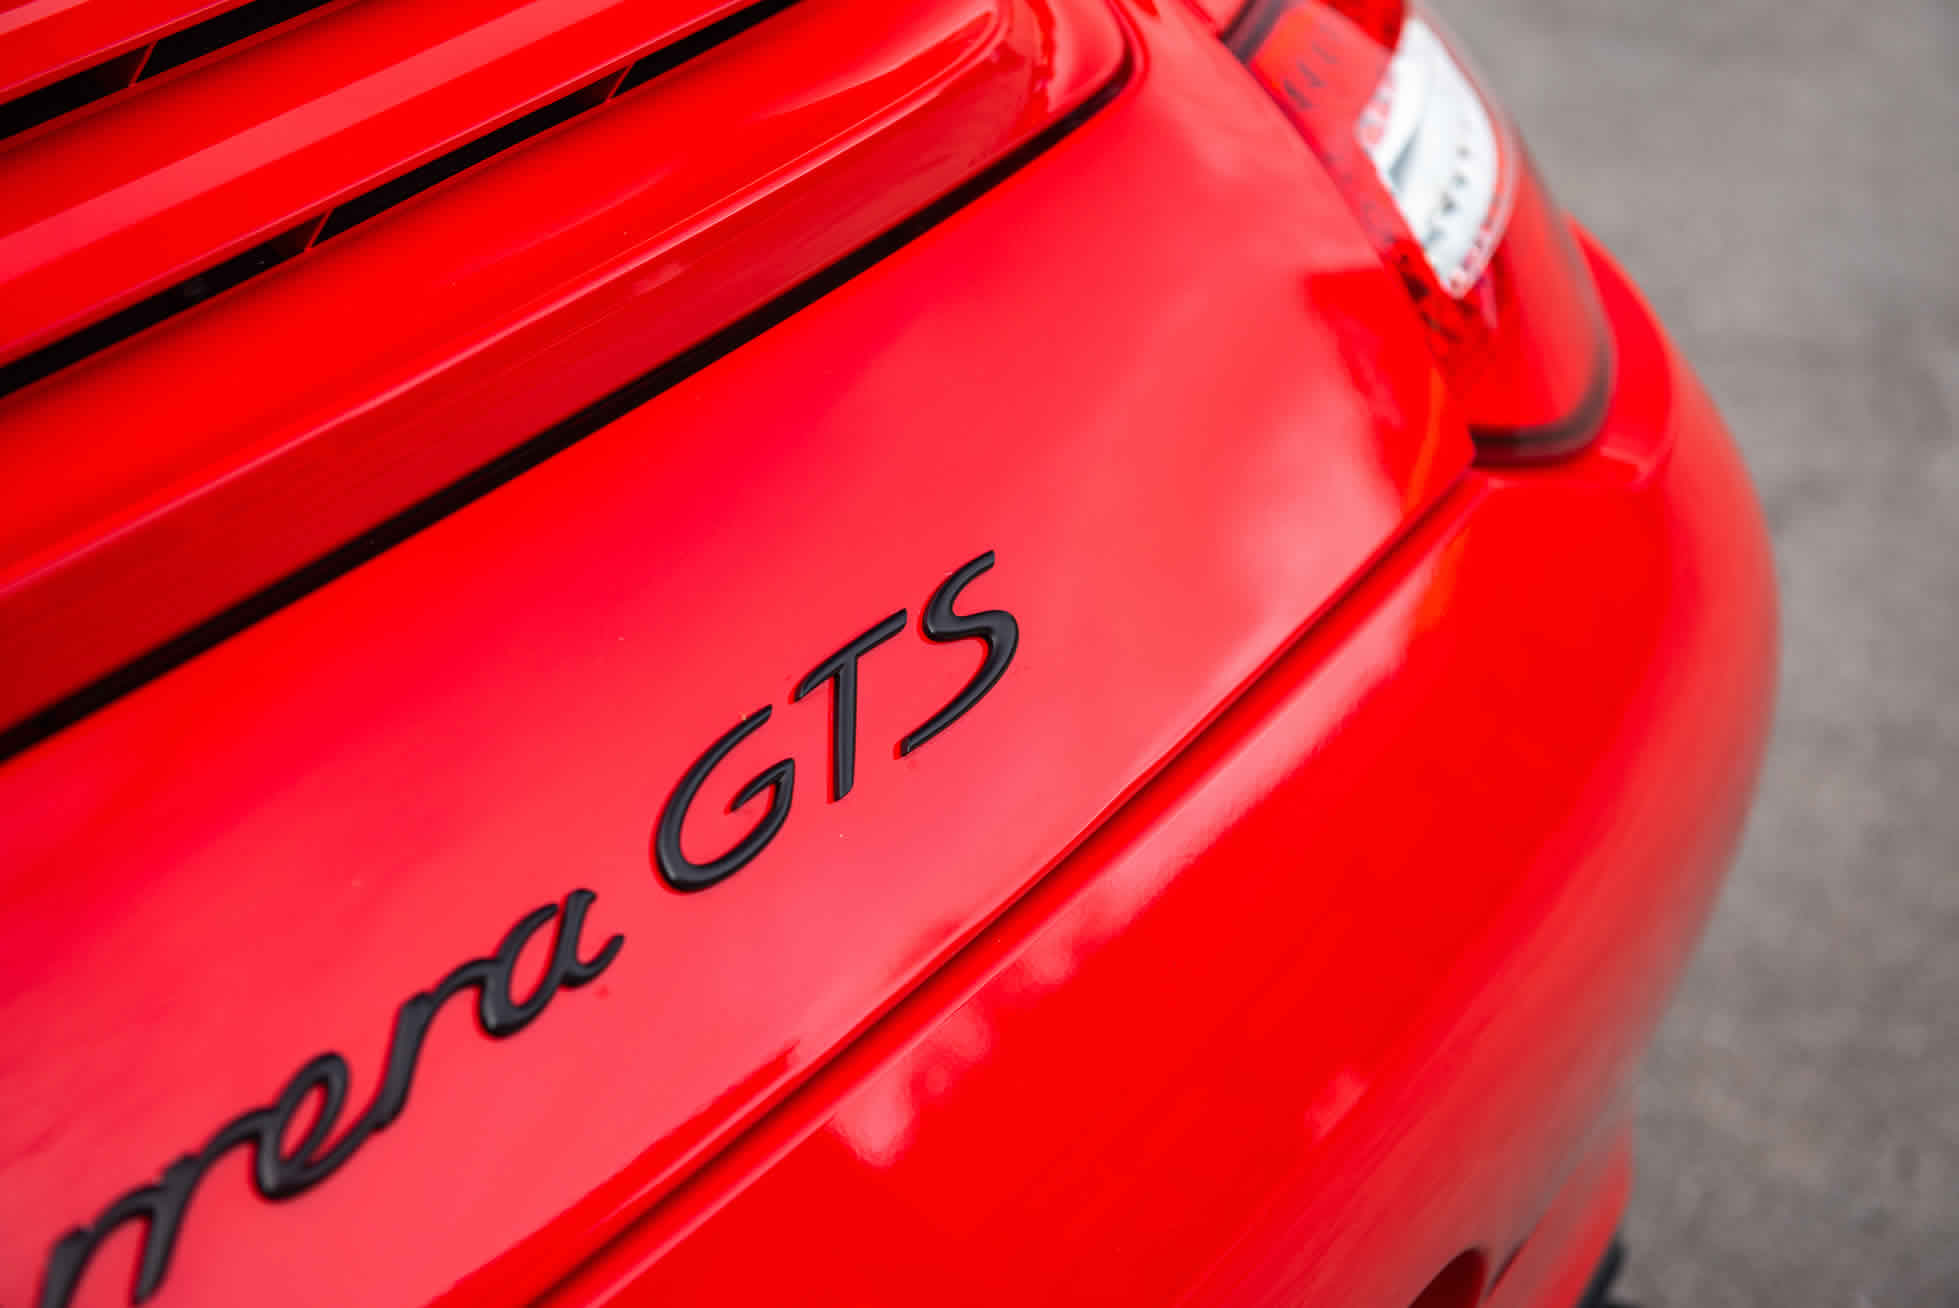 Rear badging 2011 Porsche 911 Carrera GTS For Sale at Sports Purpose, Bicester Heriatge